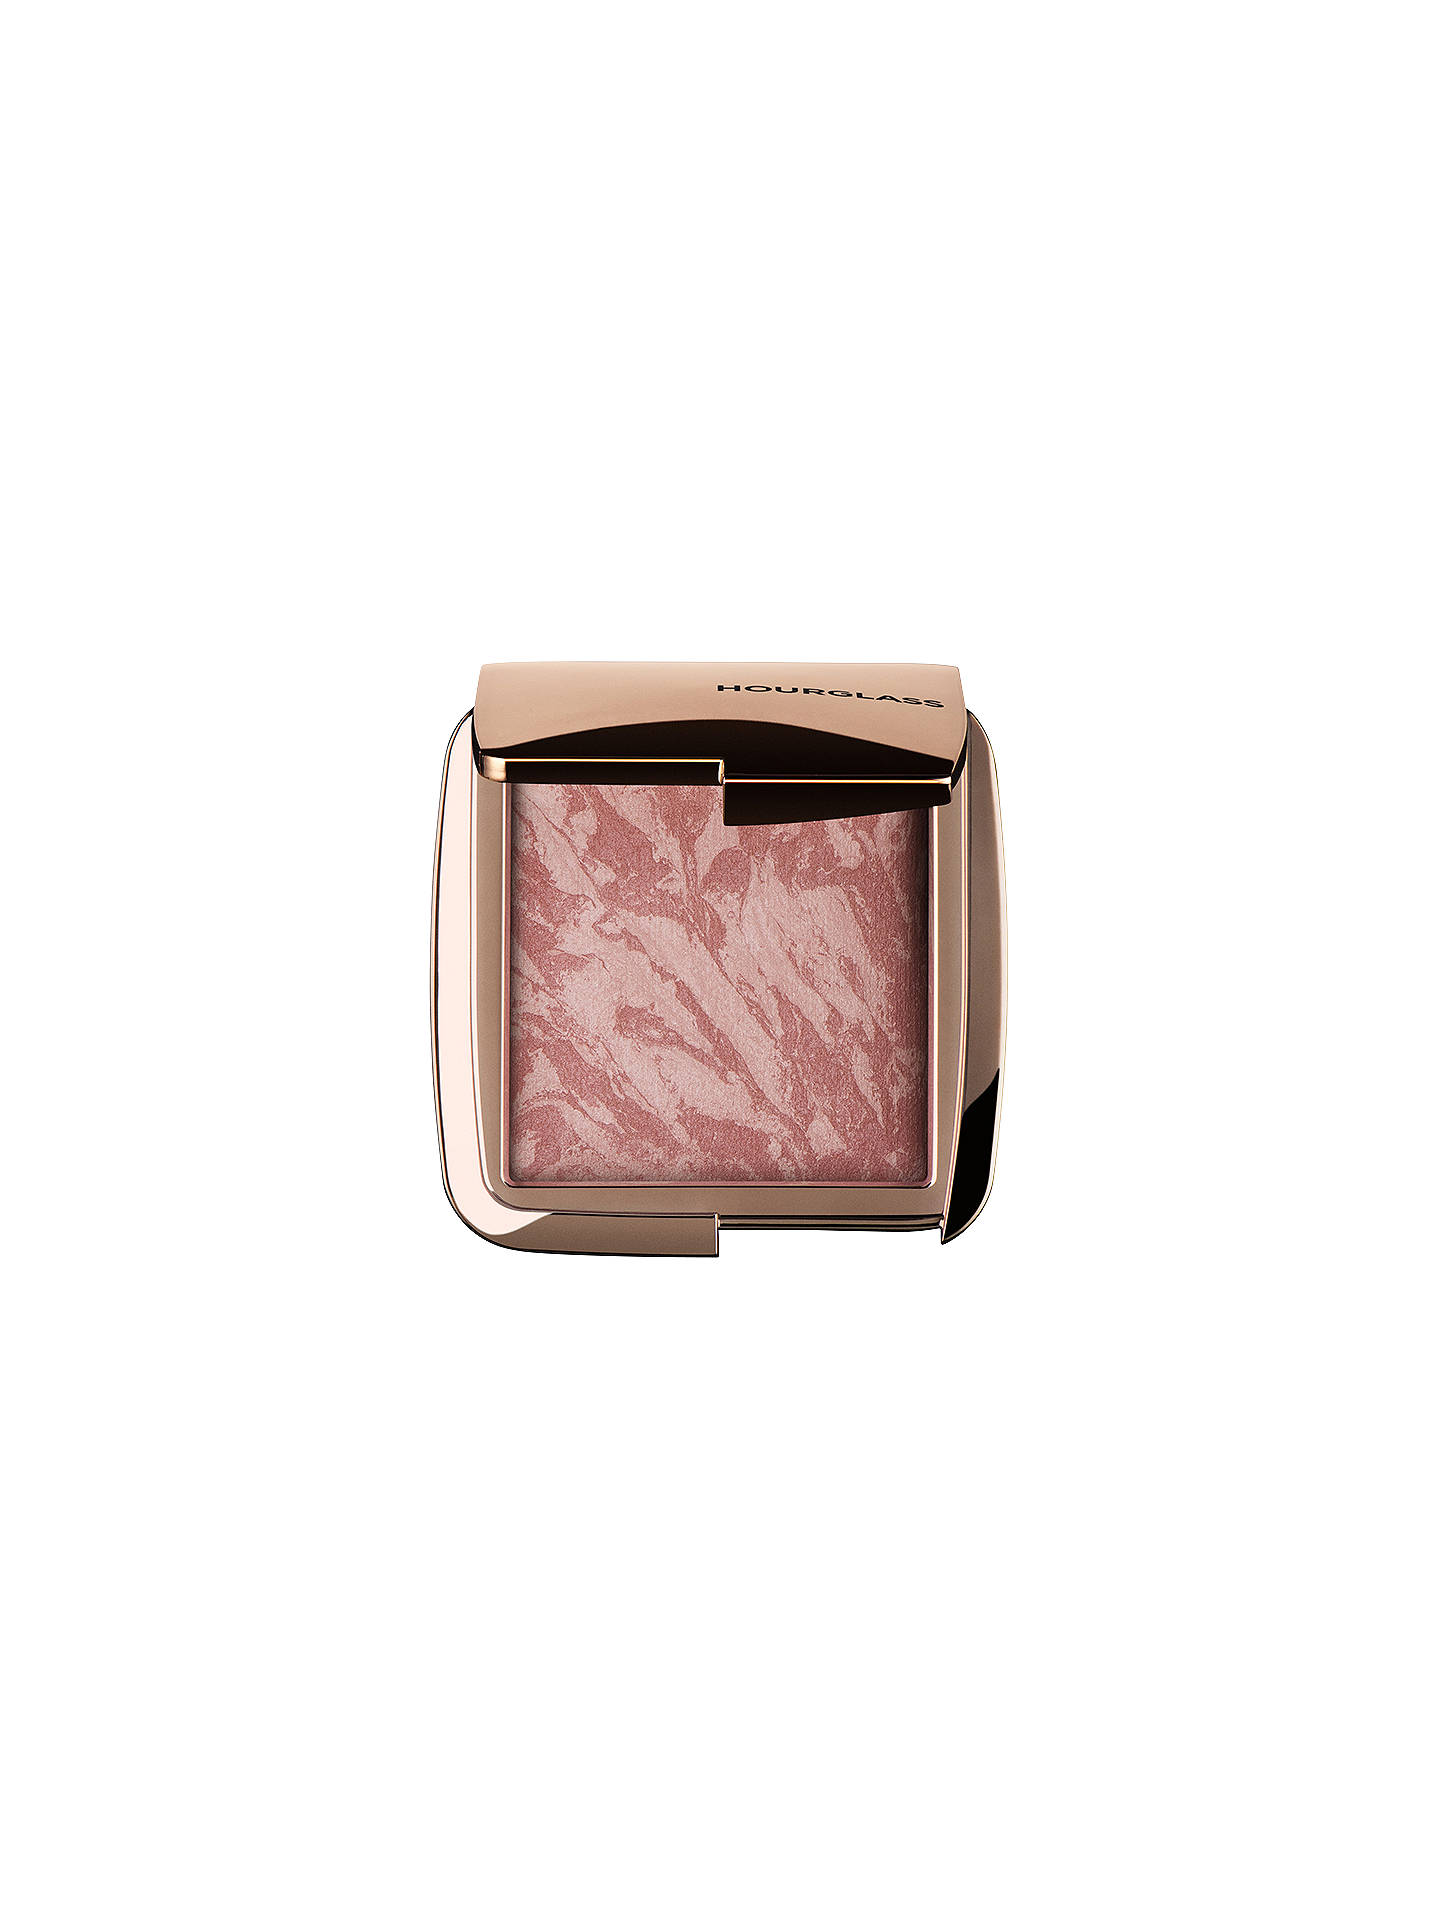 BuyHourglass Ambient Lighting Blush, Mood Exposure Online at johnlewis.com